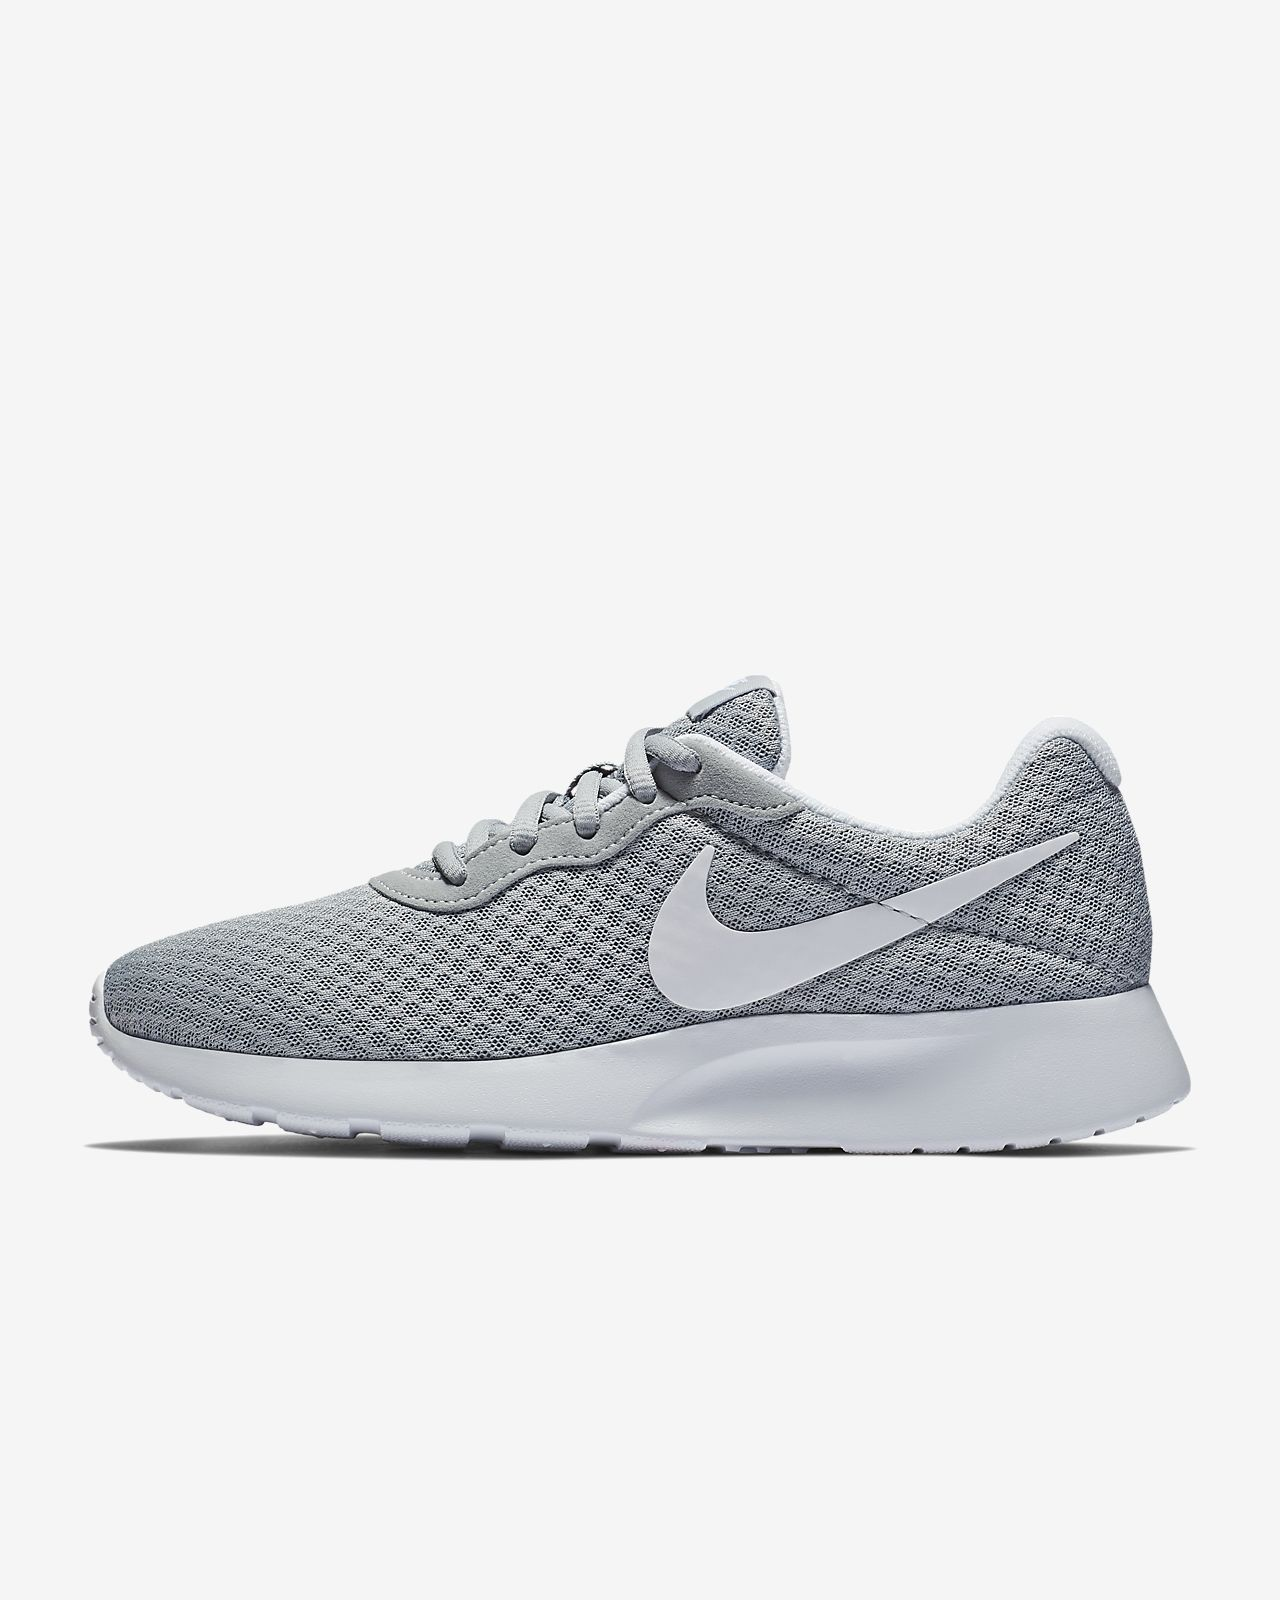 Nike Tanjun Women's Athletic Shoes | Products in 2019